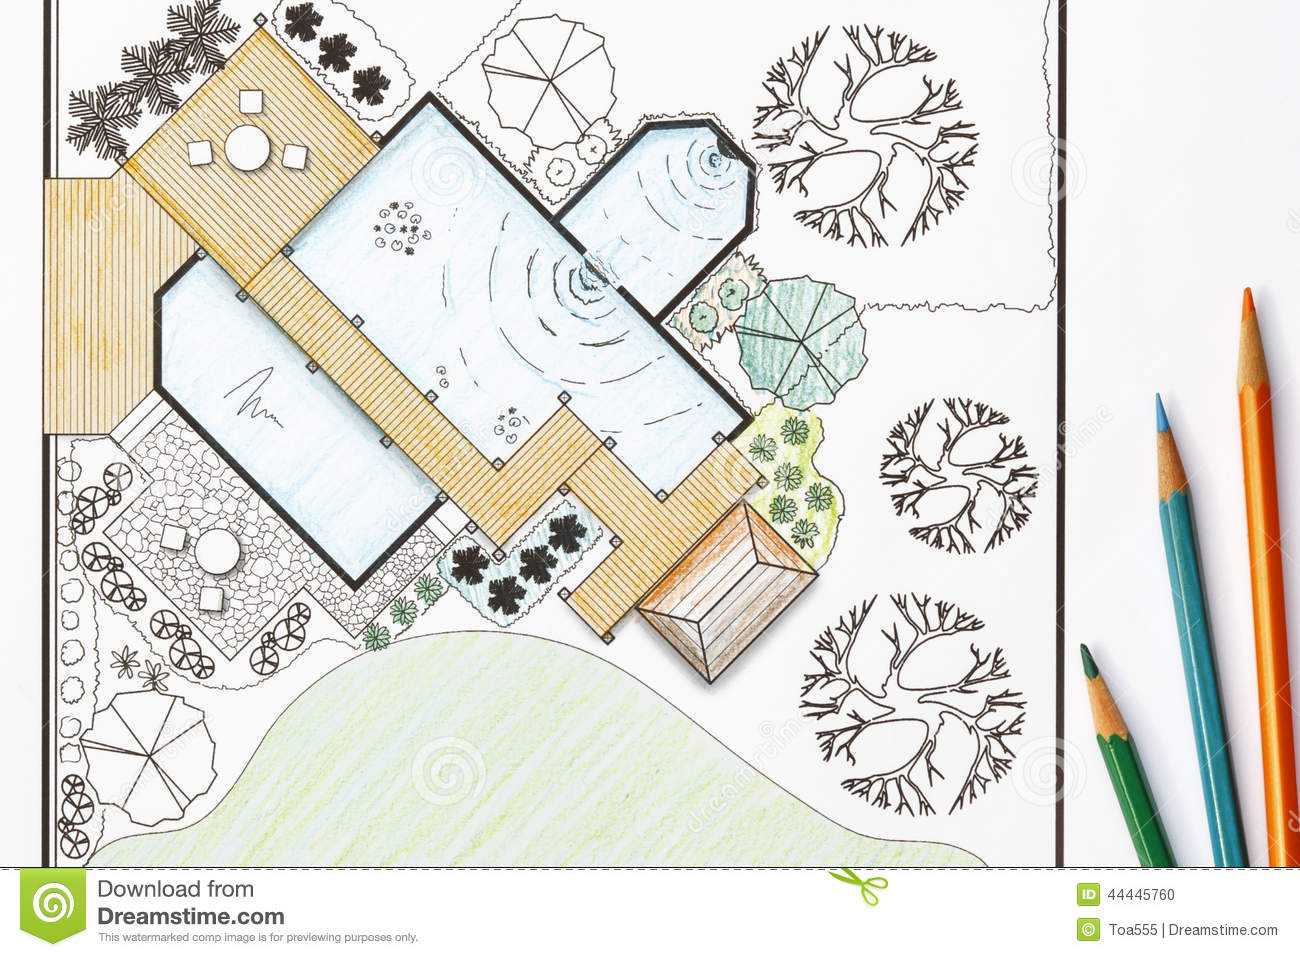 Landscape architect design garden plans for backyard stock for Garden planning and design